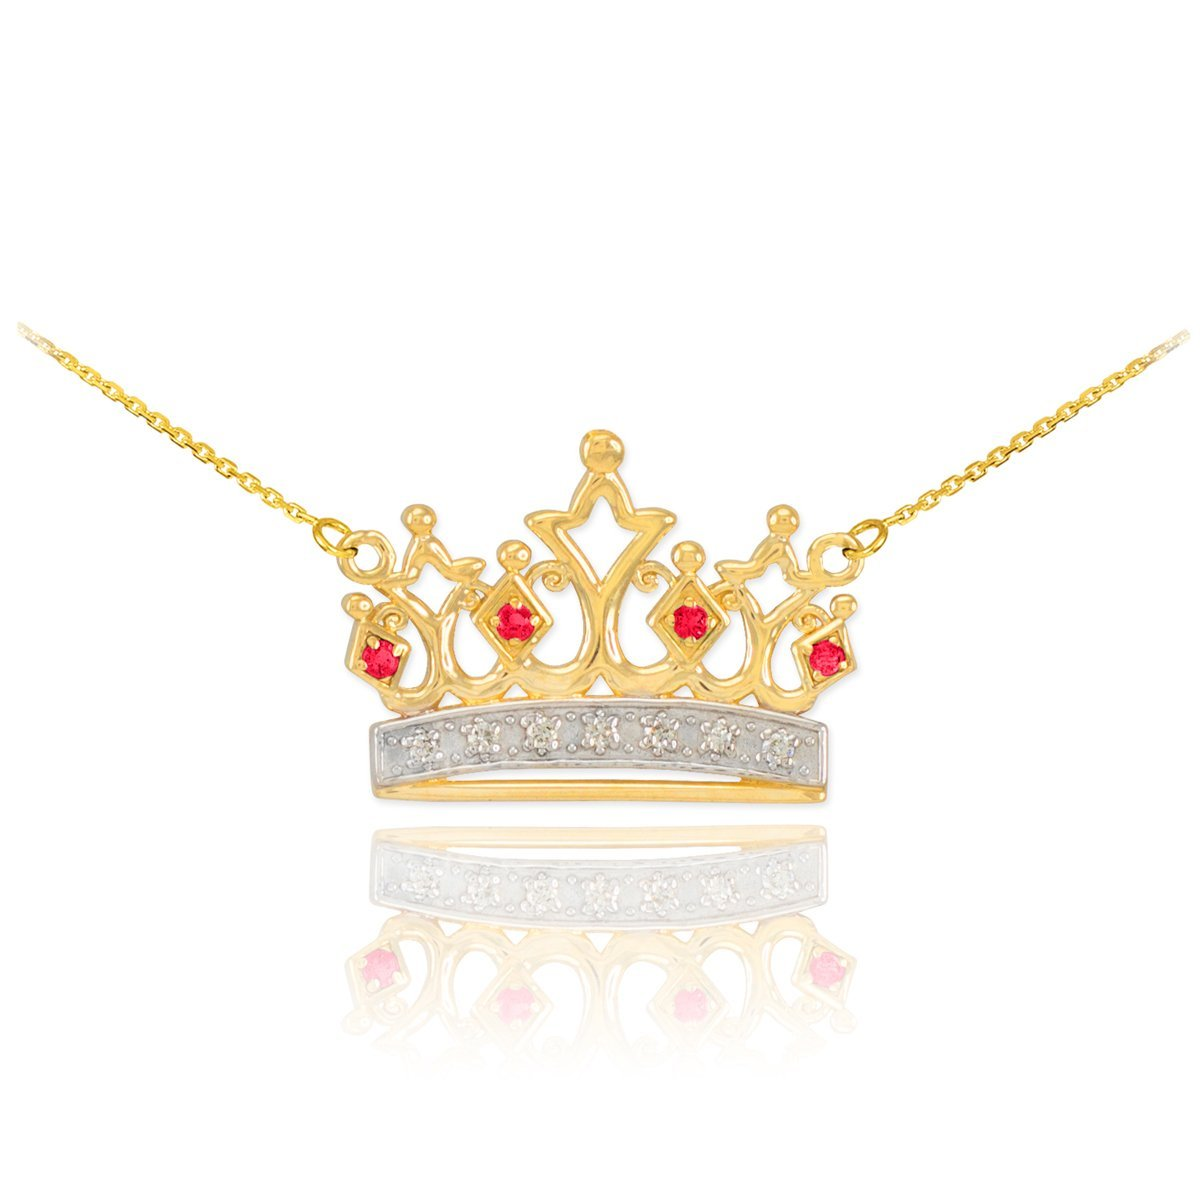 Dainty 14k Yellow Gold Ruby and Diamond Tiara Crown Pendant Necklace